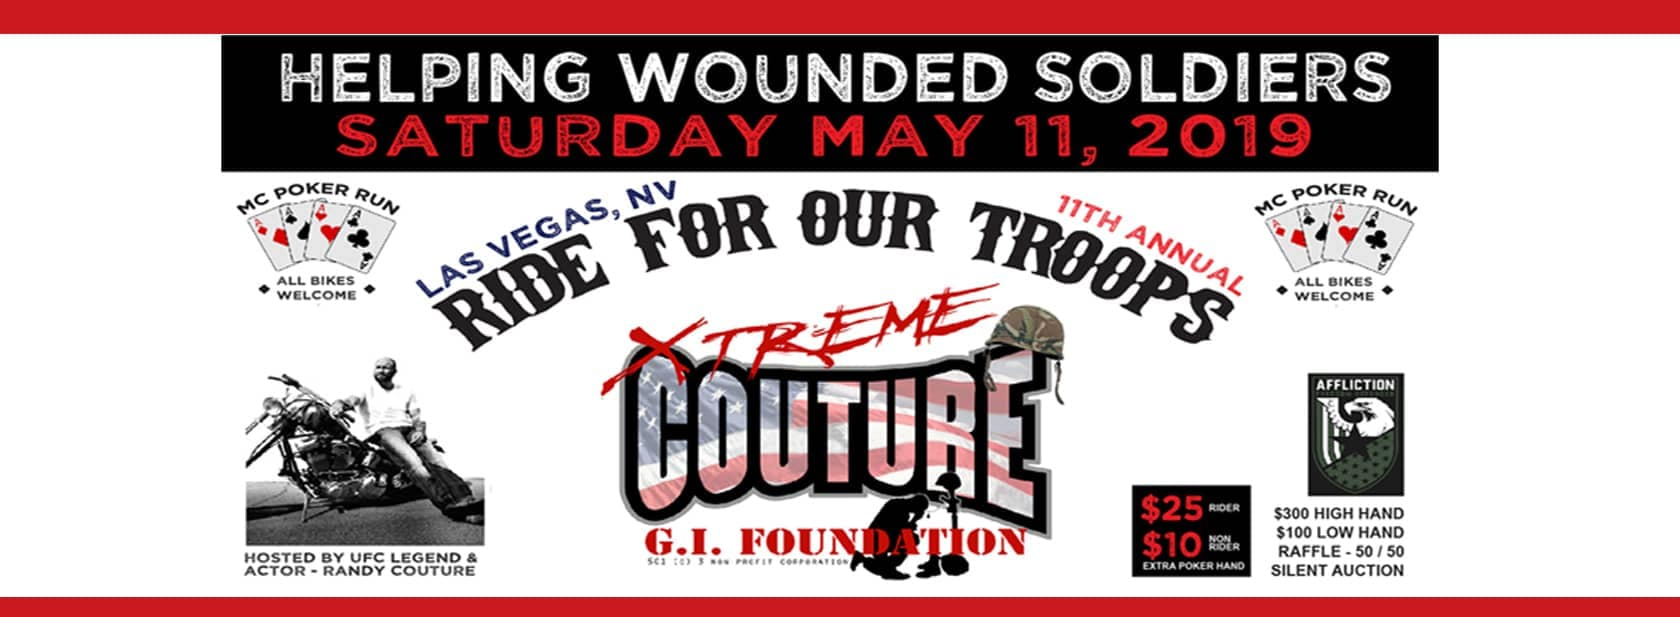 Show Your Support for Our Troops at the 11th Annual Xtreme Couture Ride